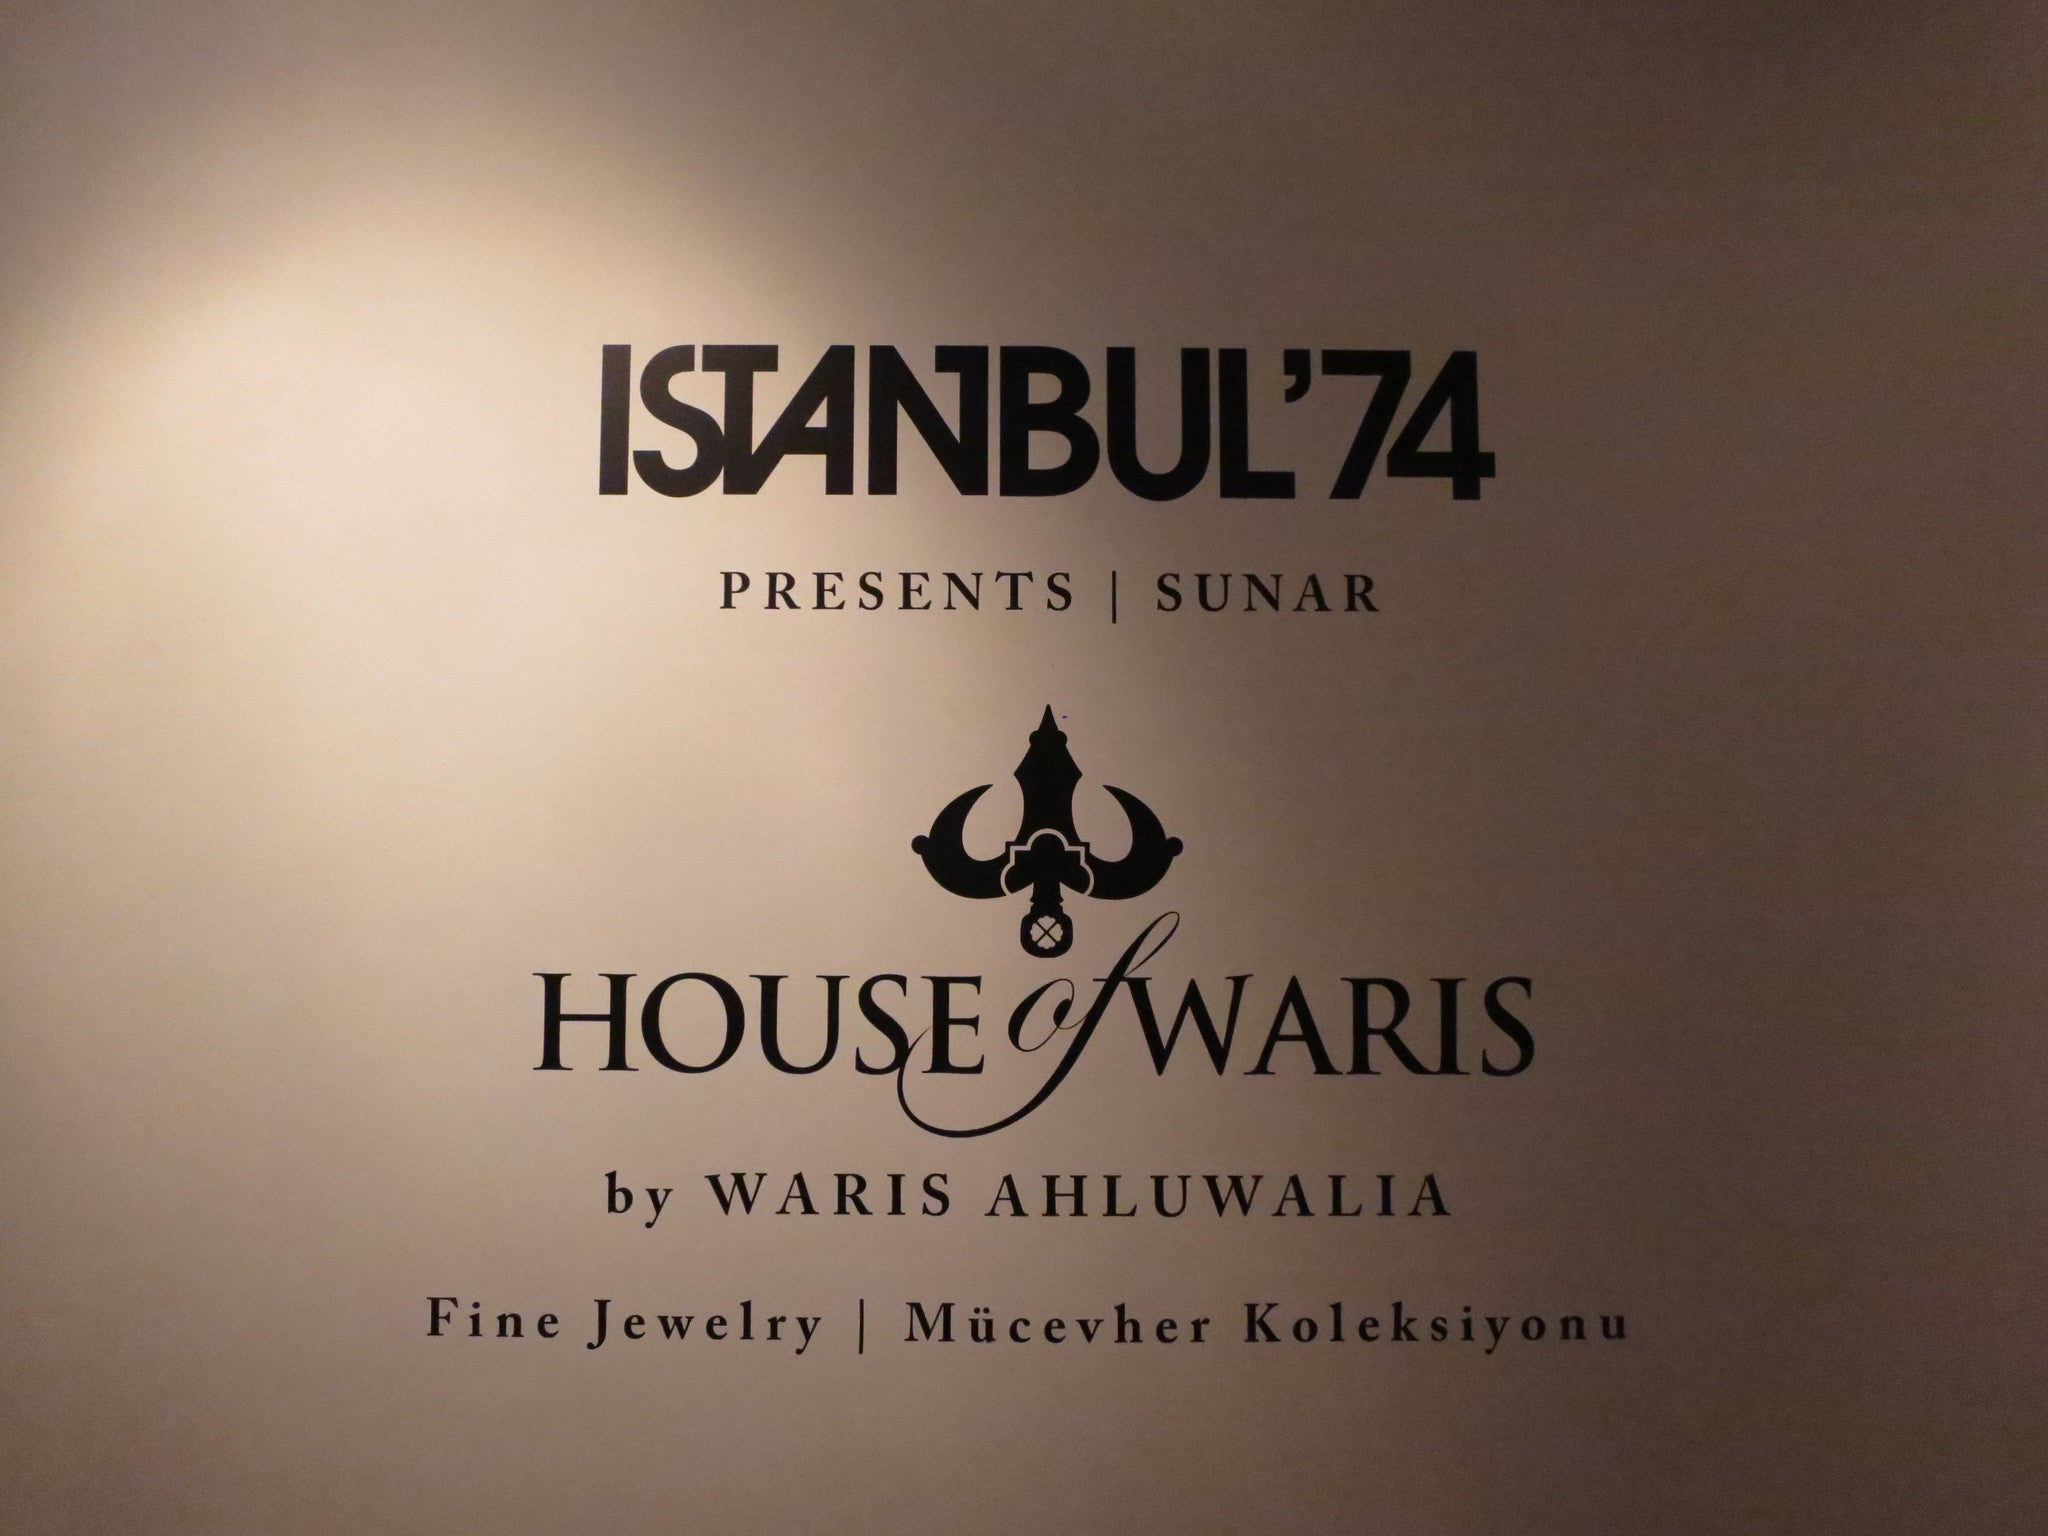 HOUSE of WARIS Exhibit at Istanbul 74